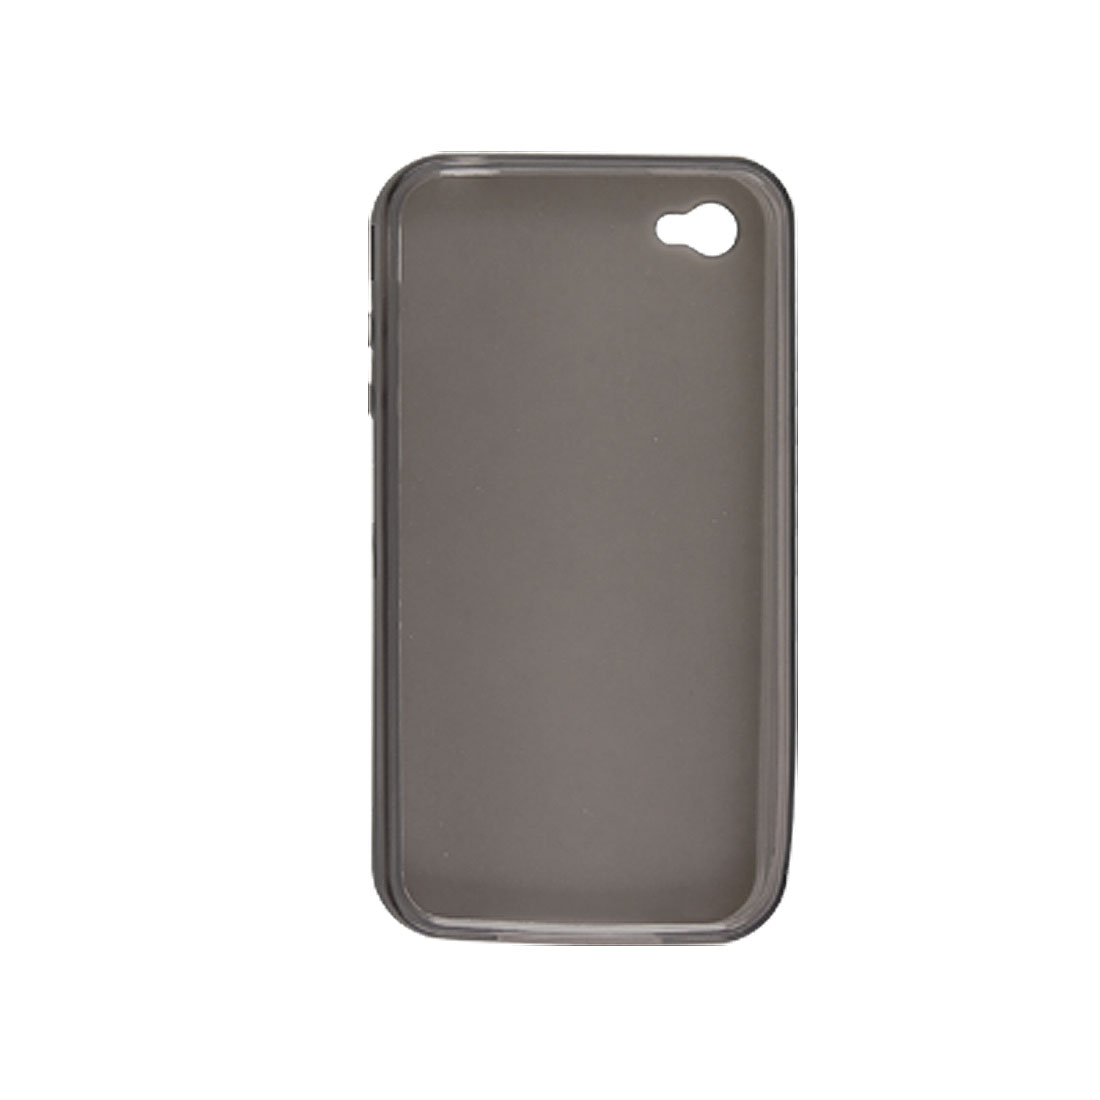 Soft Plastic Clear Gray Cover Case + Screen Guard for Apple iPhone 4 4G